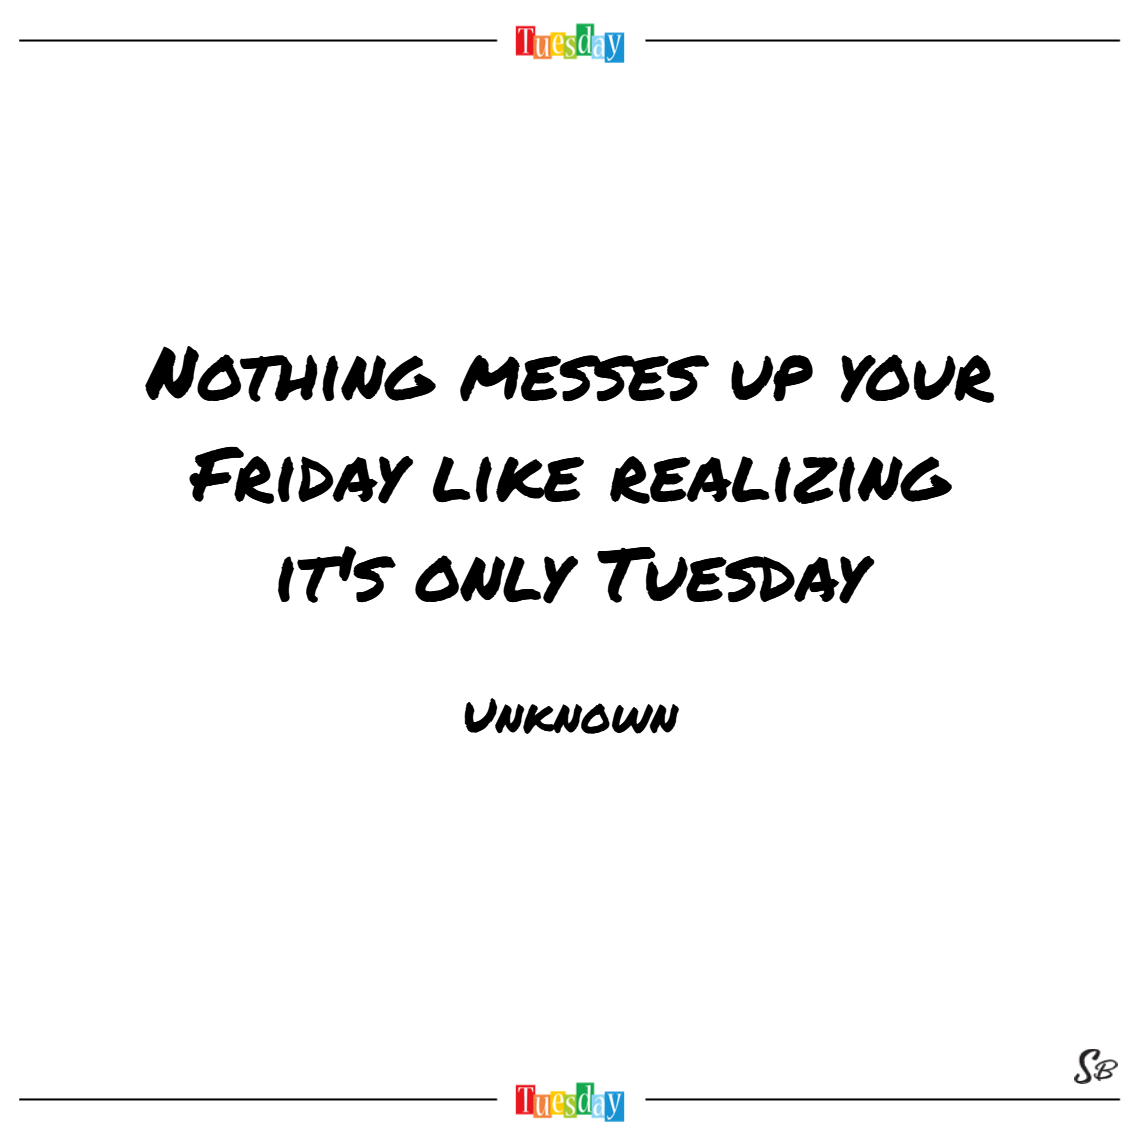 Nothing messes up your friday like realizing it's only tuesday. – unknown